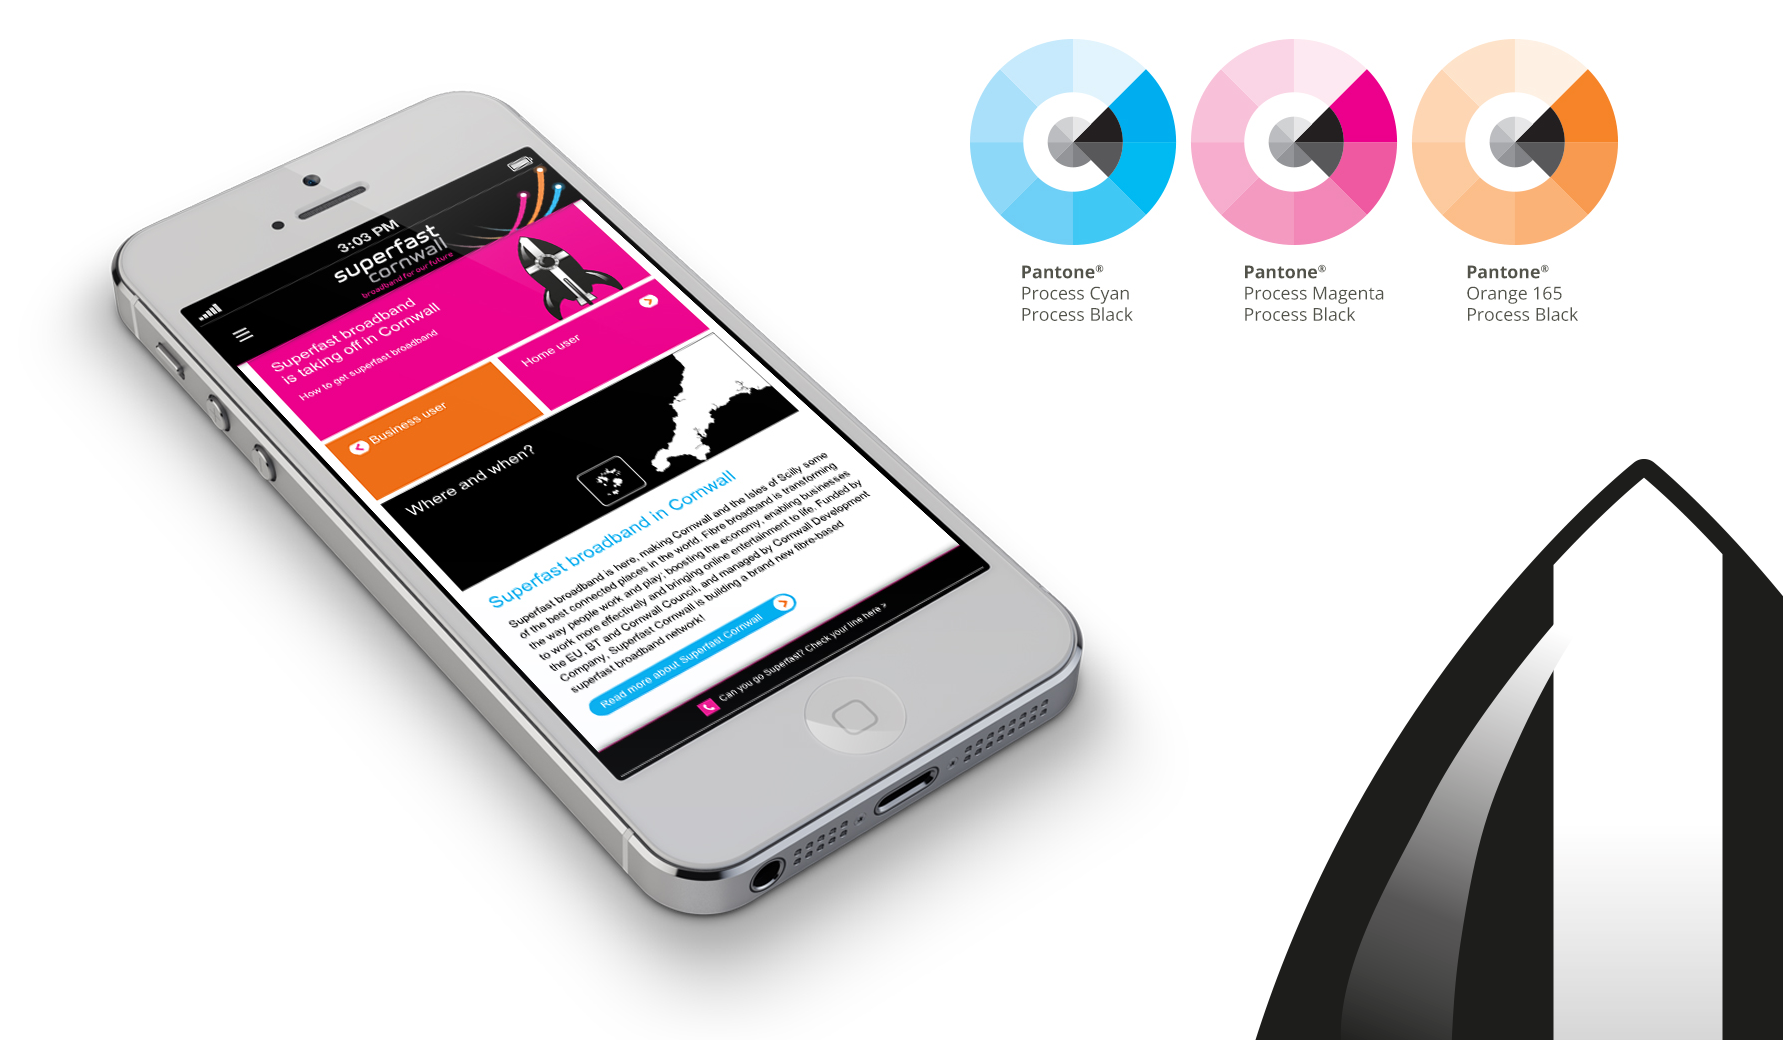 a mobile device showing the responsive website homepage of superfast cornwall, along with pantone wheels of the main colours used in the brand identity